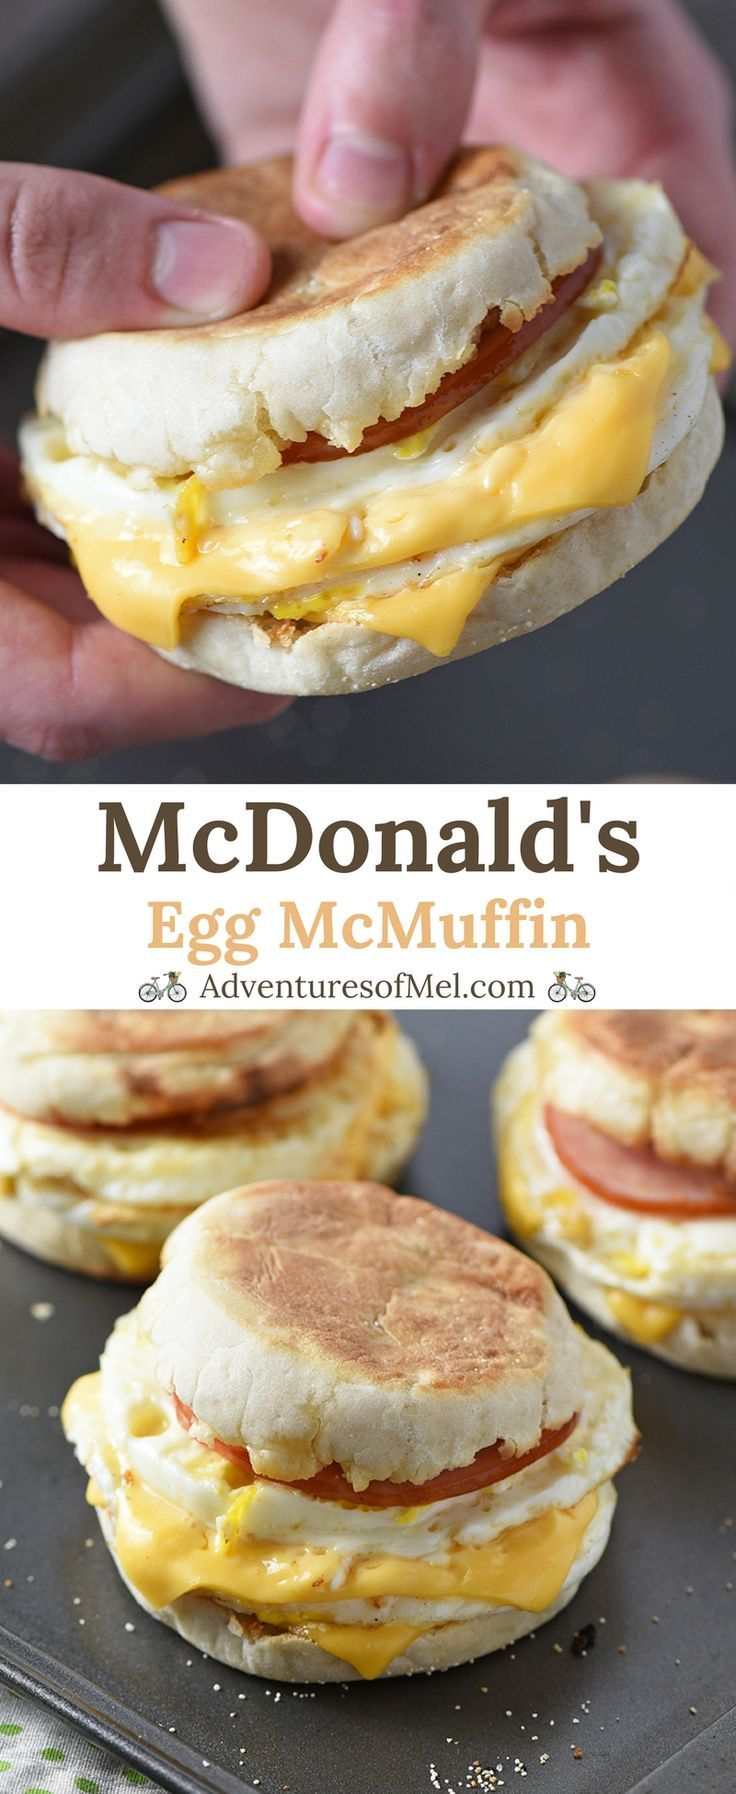 McDonald's Egg McMuffin, made with Canadian bacon, eggs, and cheese, is a delicious homemade breakfast sandwich and a super easy recipe for busy mornings! #easyrecipe #copycat #breakfast #McDonalds